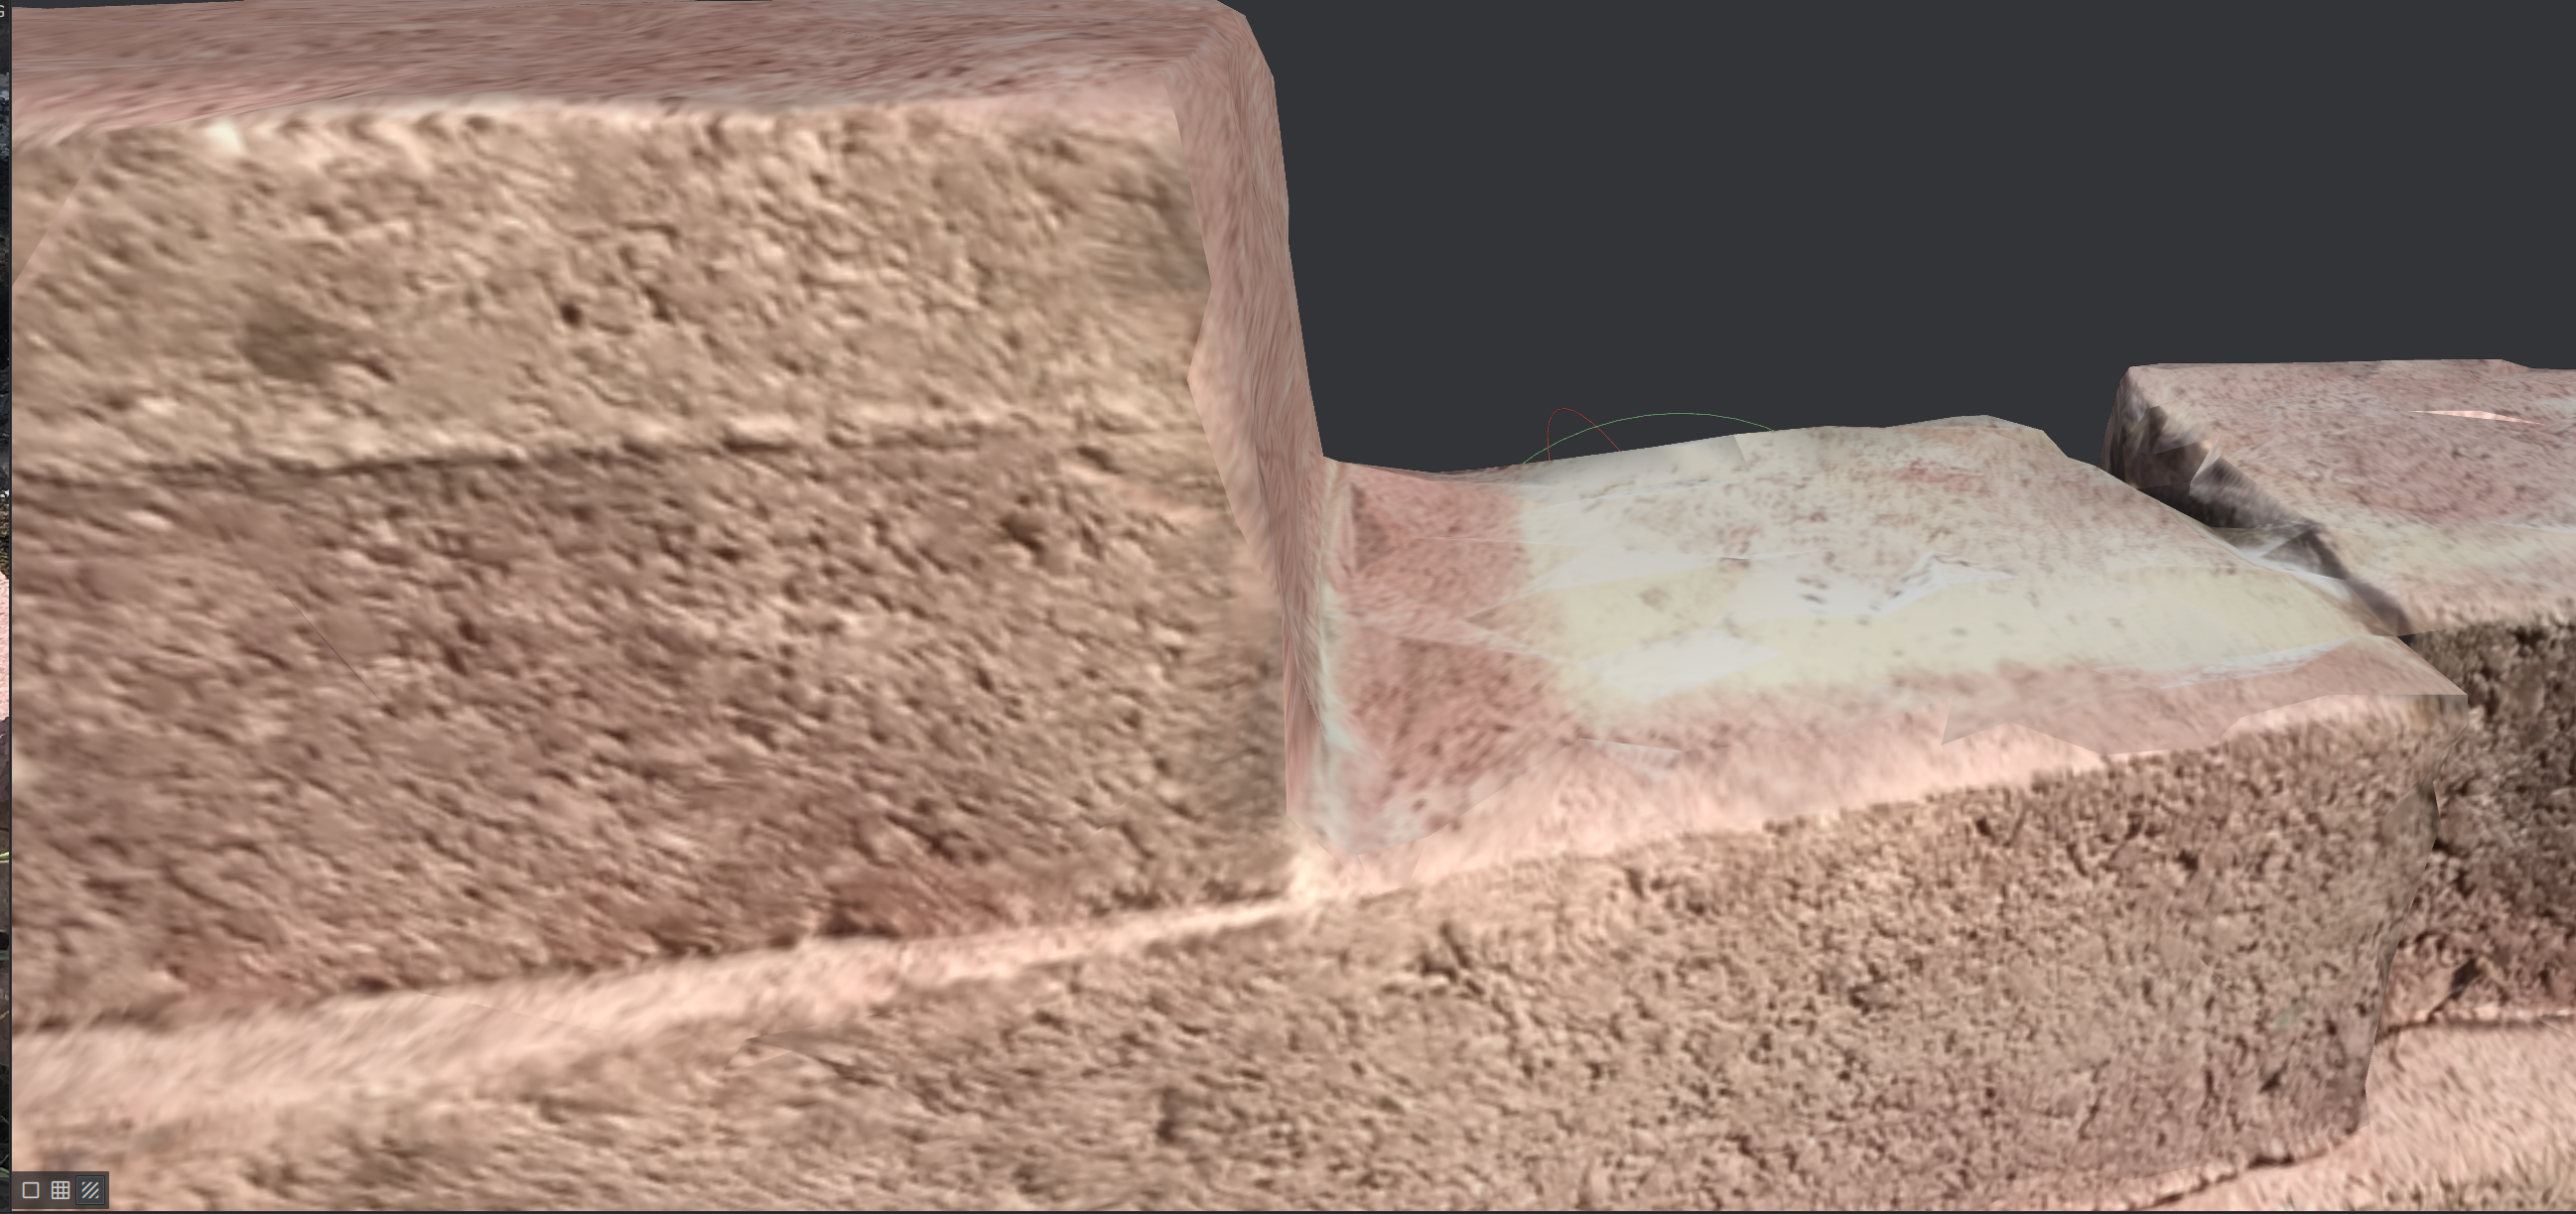 Getting started with Photogrammetry — with an Smartphone